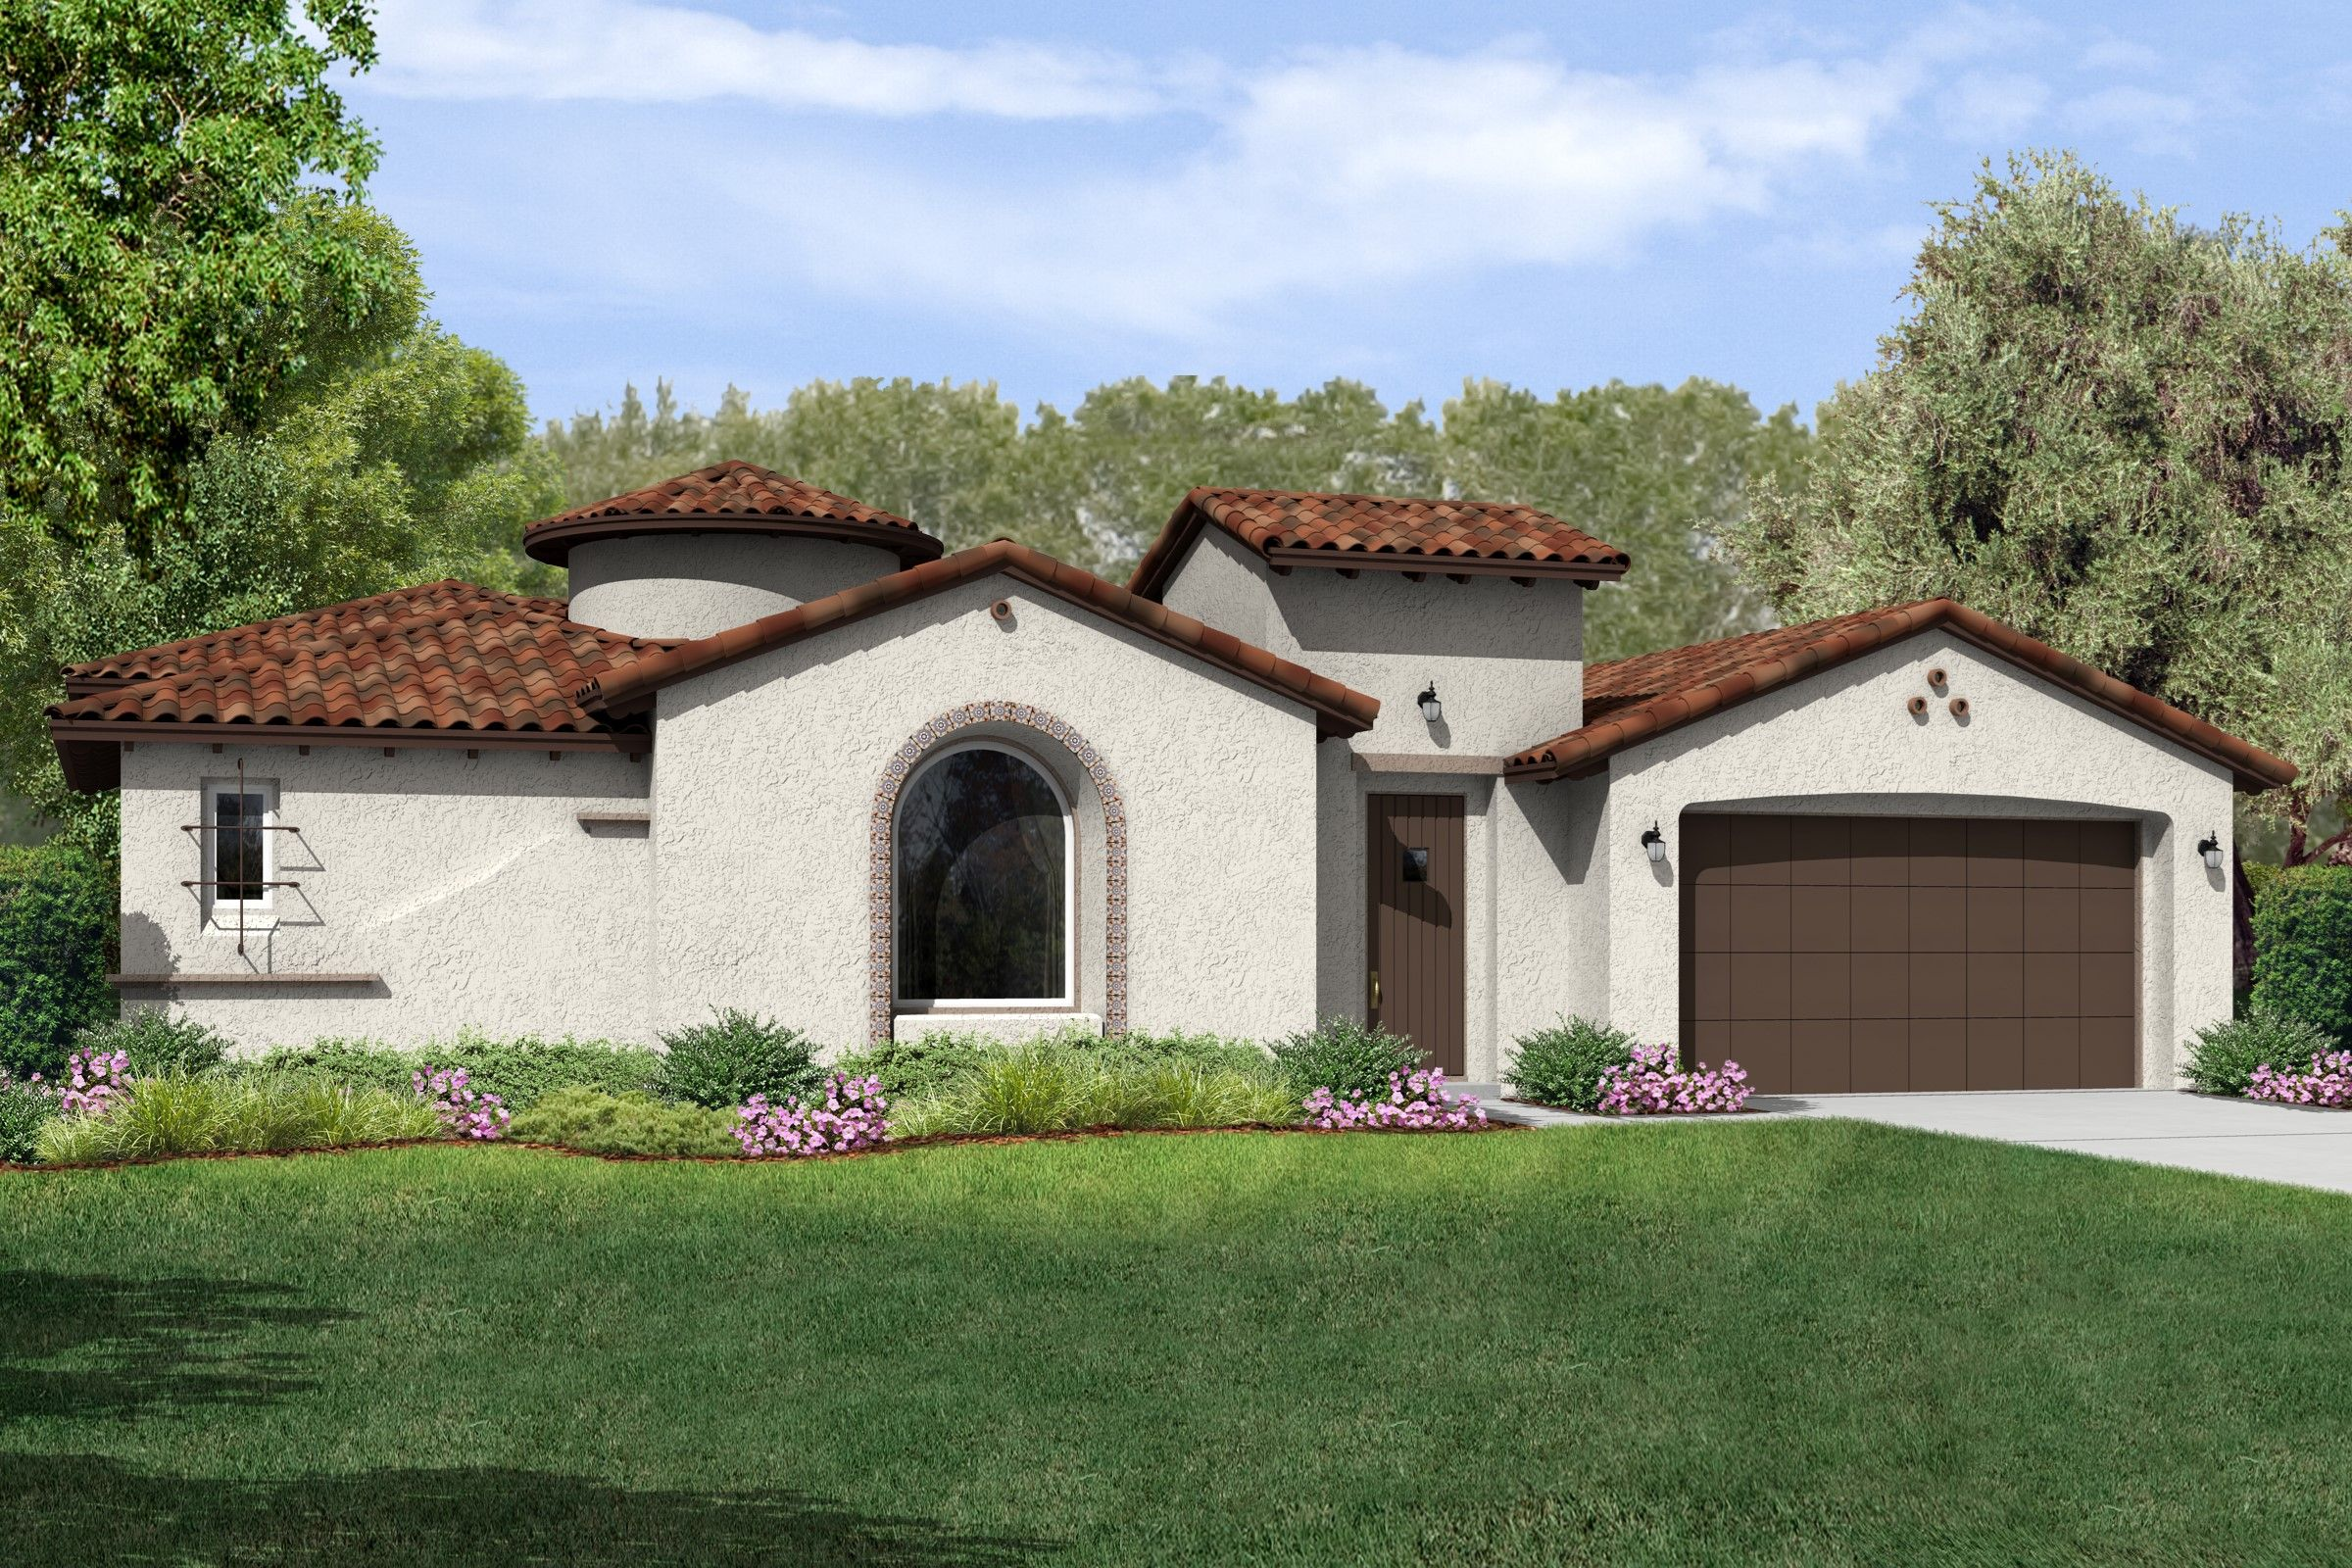 Single Family for Sale at The Executive Collection At Meridian Hills - Amber 6859 Ridgemark Drive Moorpark, California 93021 United States